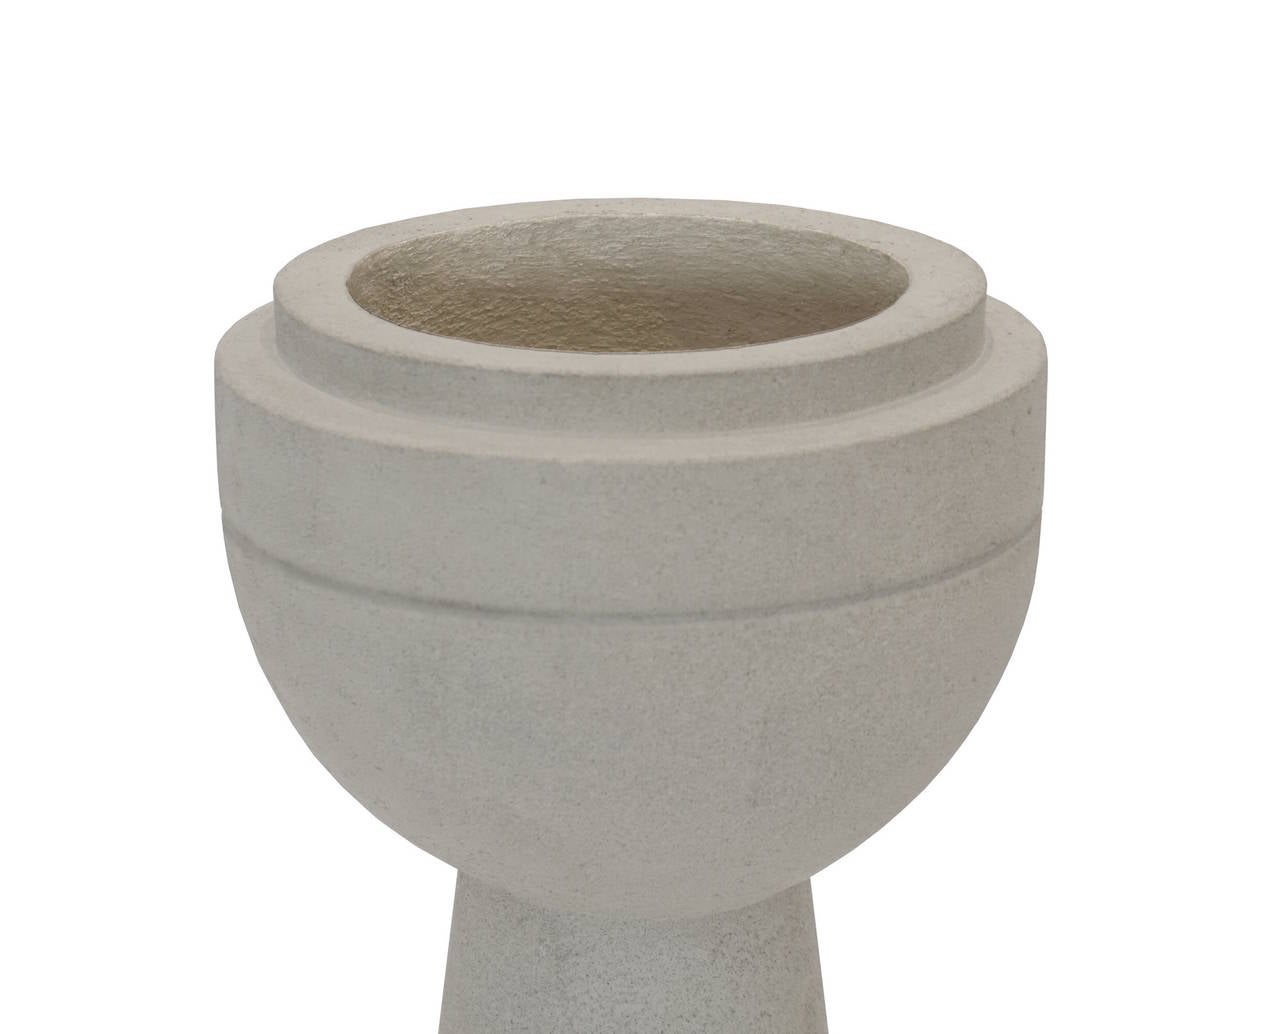 Eschbach ii cast concrete planter for sale at 1stdibs - Casting concrete planters ...